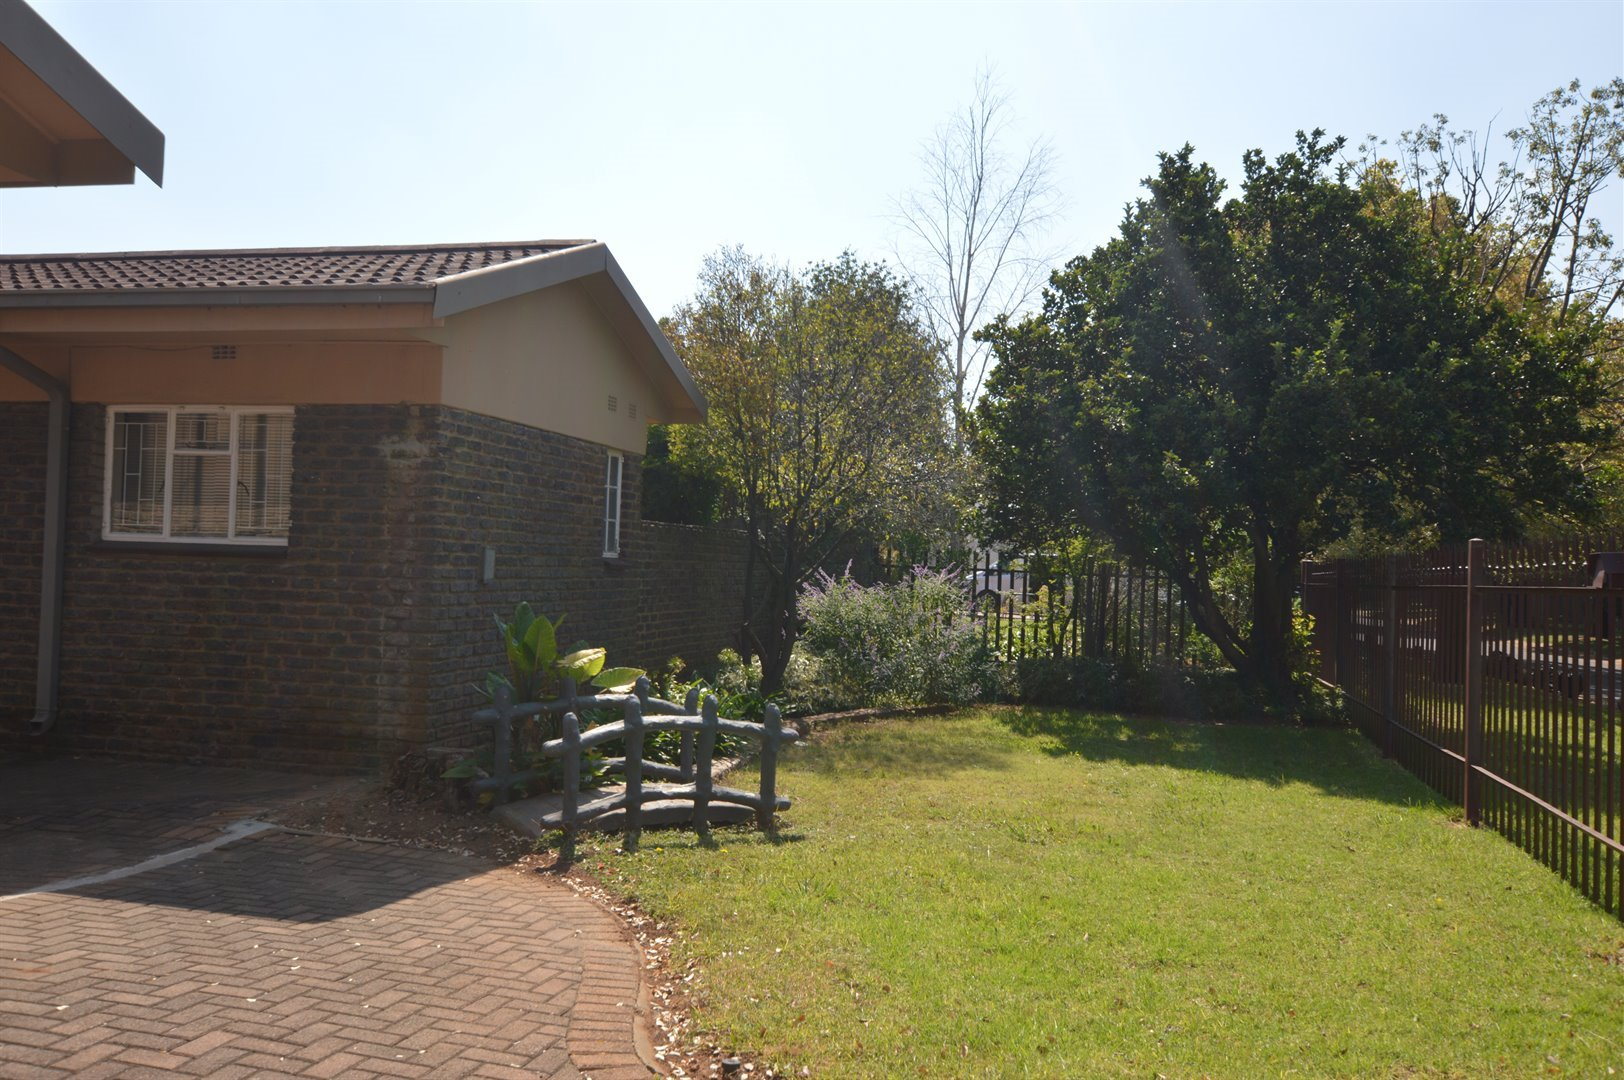 Vanderbijlpark Se 2 property for sale. Ref No: 13623209. Picture no 39